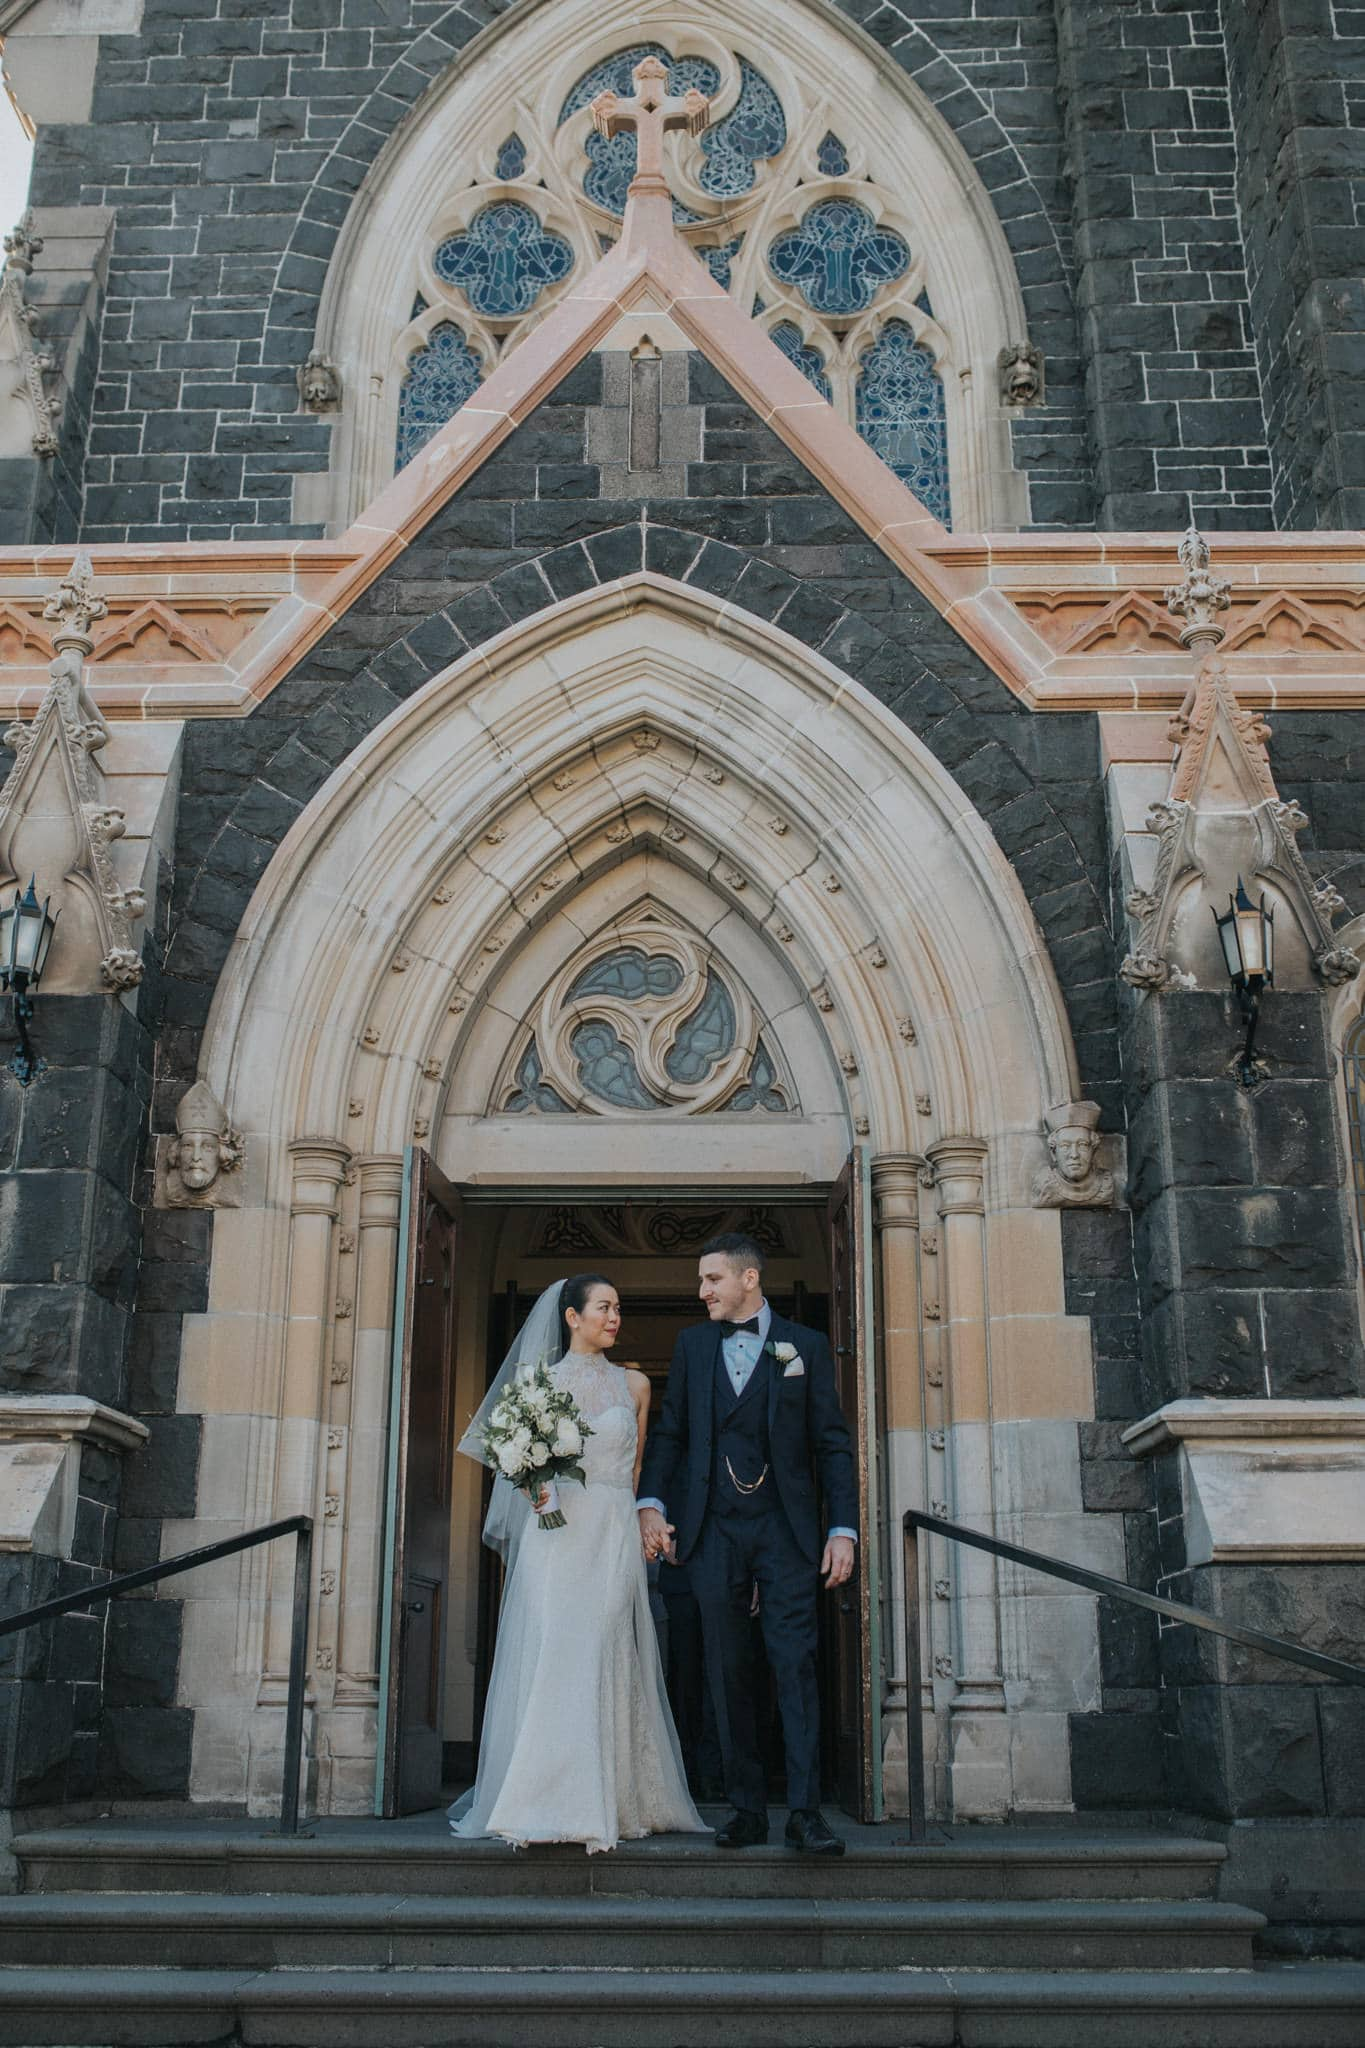 Wedding photos at Immaculate Conception Catholic Church - Hawthorn